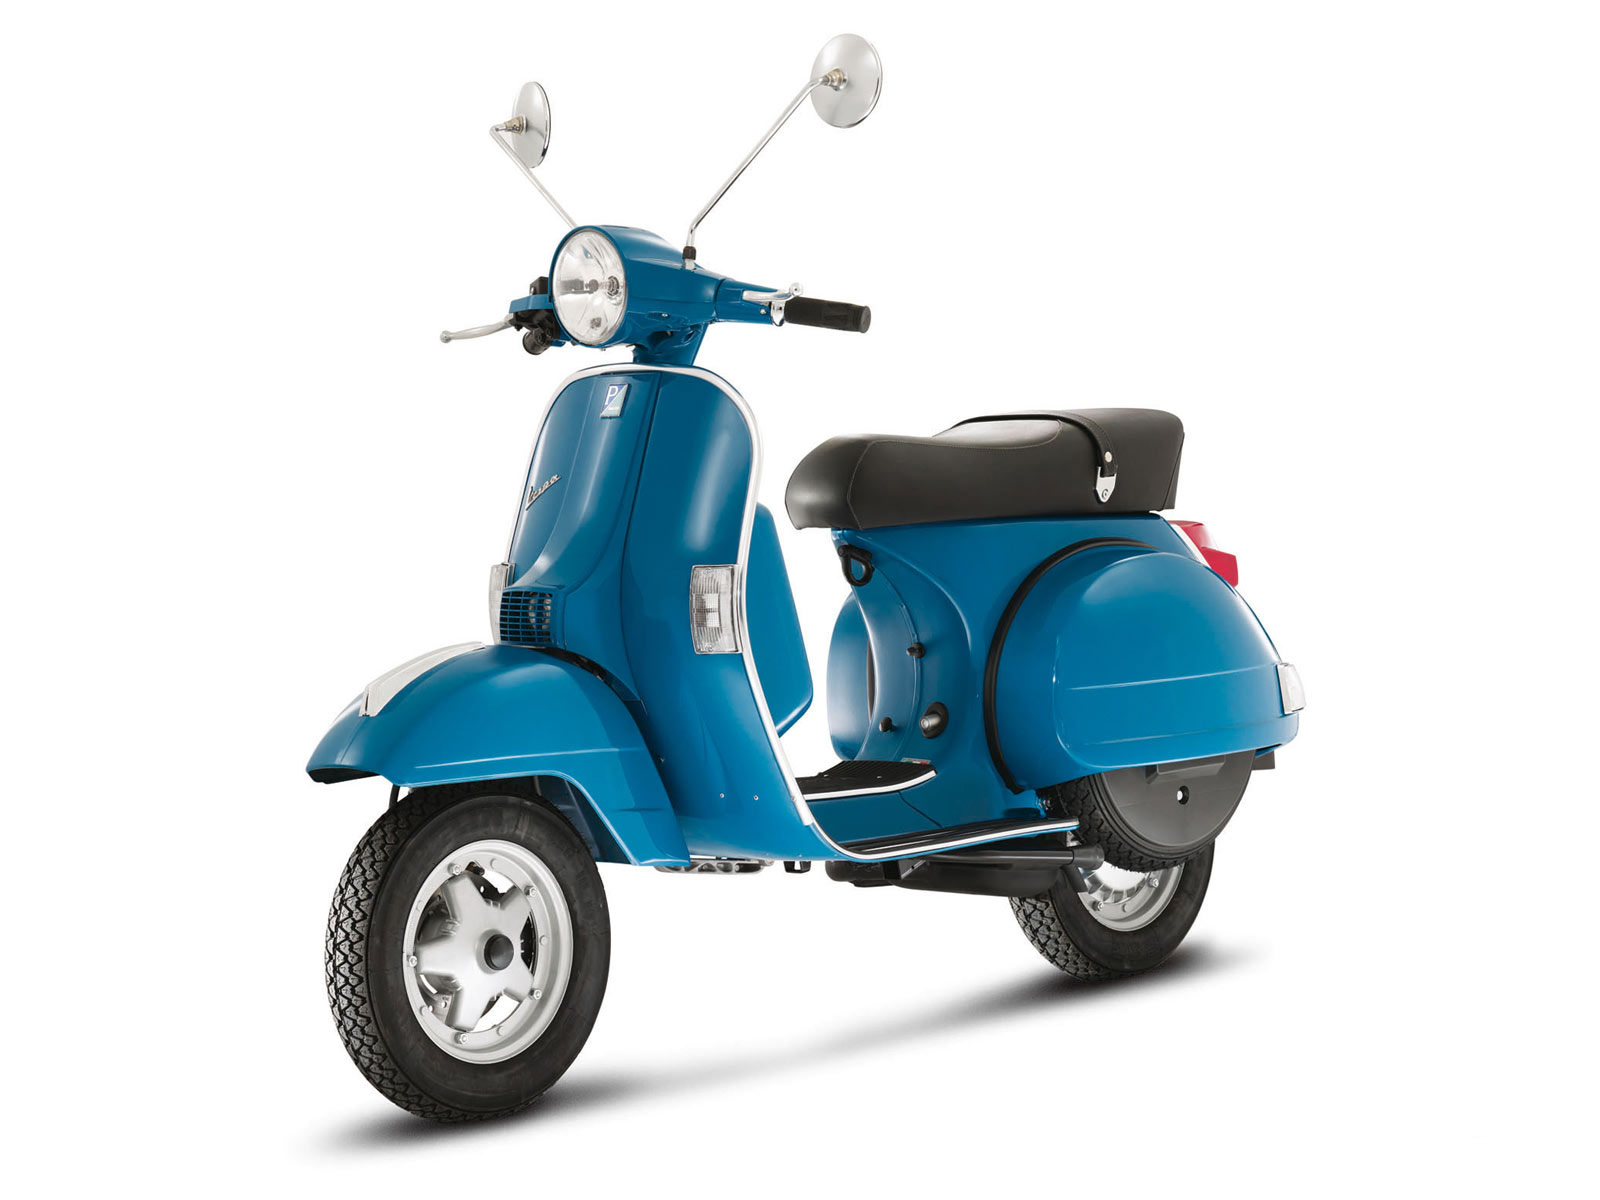 Vespa Px 150 Wallpapers 2011